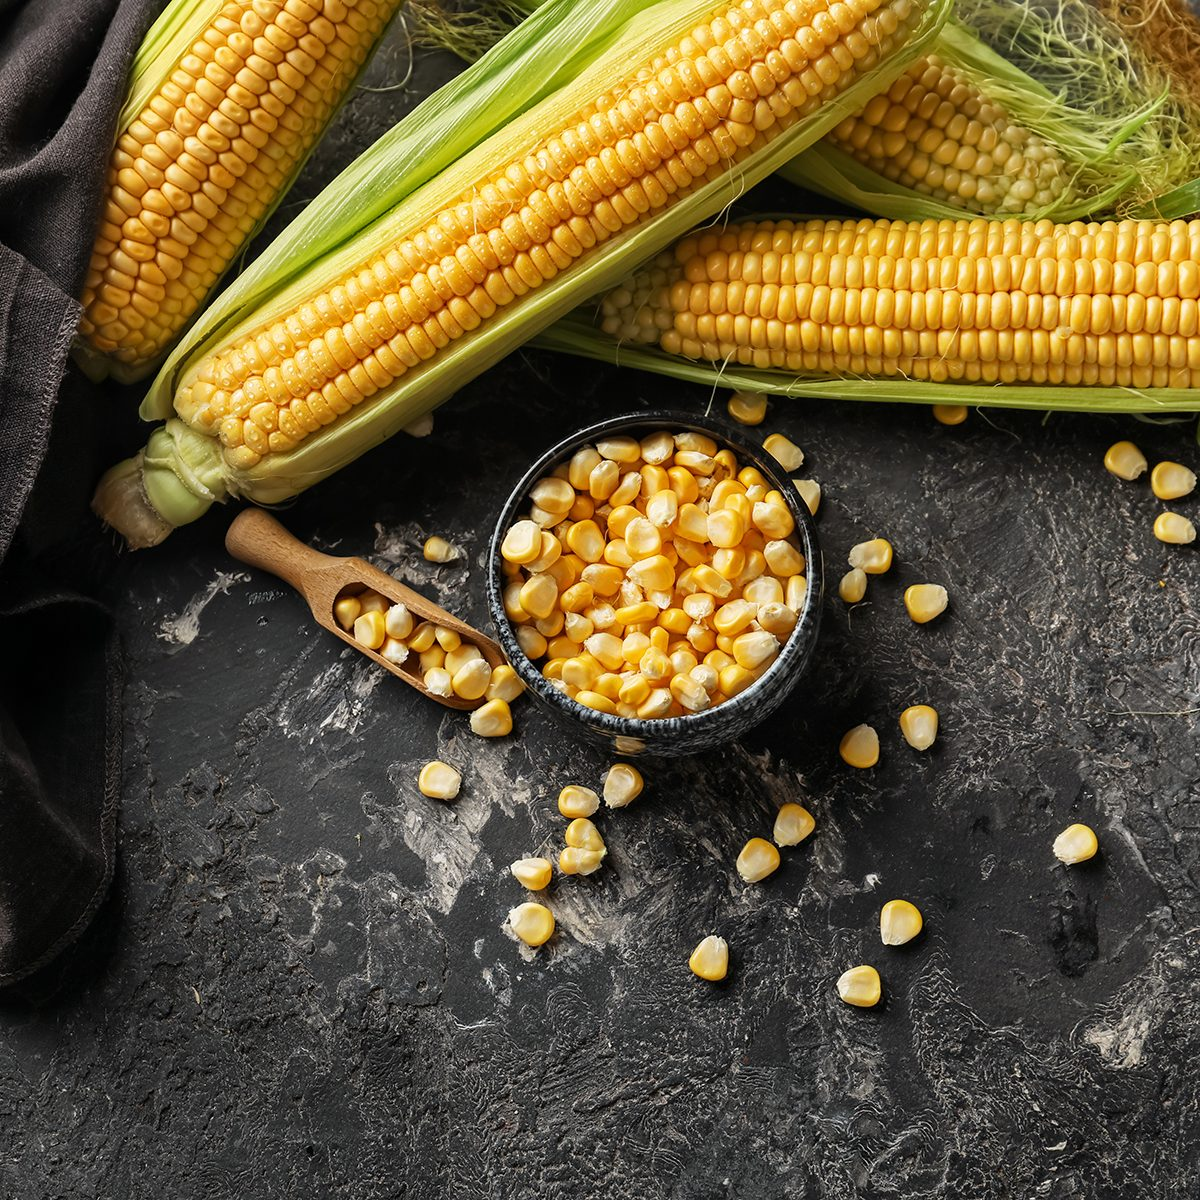 Composition with fresh corn cobs on dark background